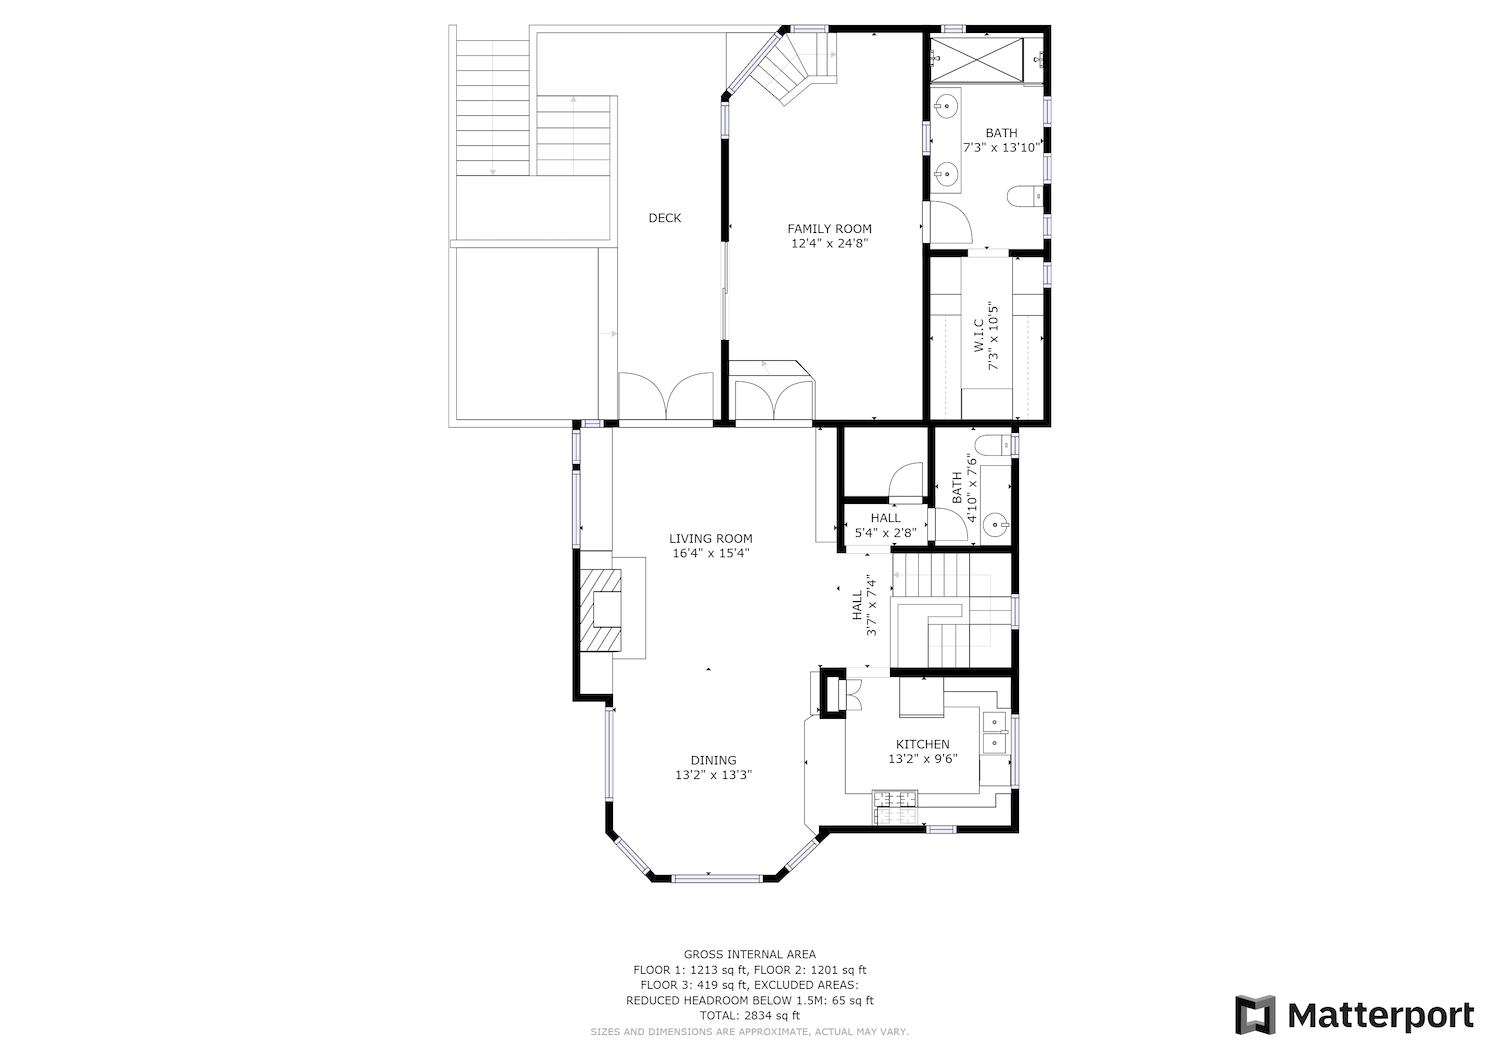 127 Bethany Curve - second level floor plan